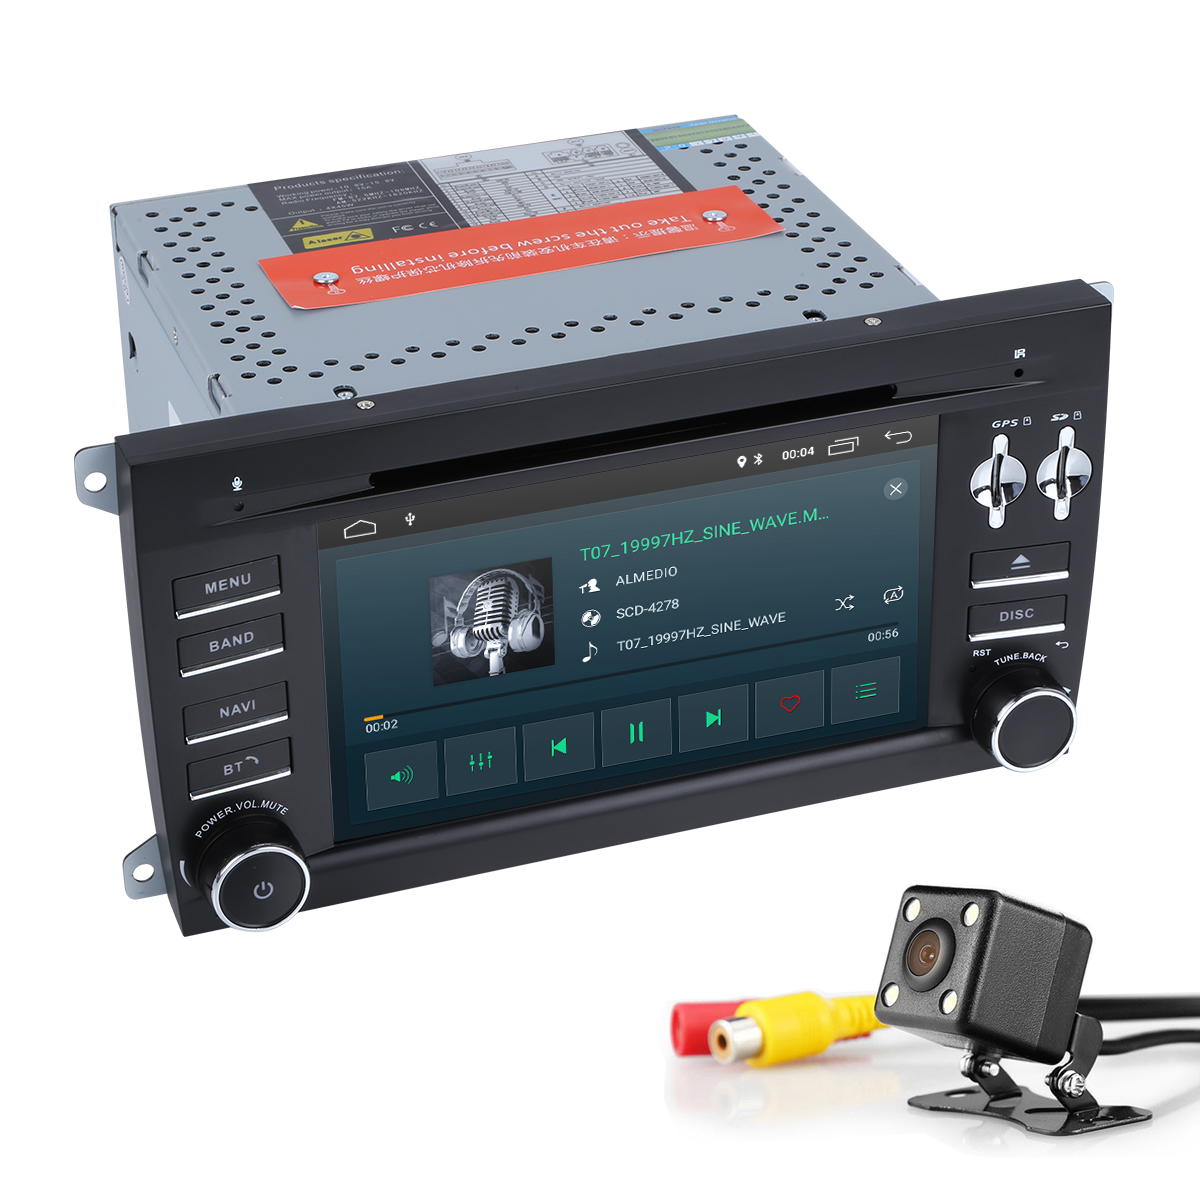 2G RAM Android 8.1 7 Car DVD Multimedia Player For Porsche Cayenne 2003 2004 2005 2006 2007 2008 2009 2010 RDS OBD2 Camera DAB+2G RAM Android 8.1 7 Car DVD Multimedia Player For Porsche Cayenne 2003 2004 2005 2006 2007 2008 2009 2010 RDS OBD2 Camera DAB+